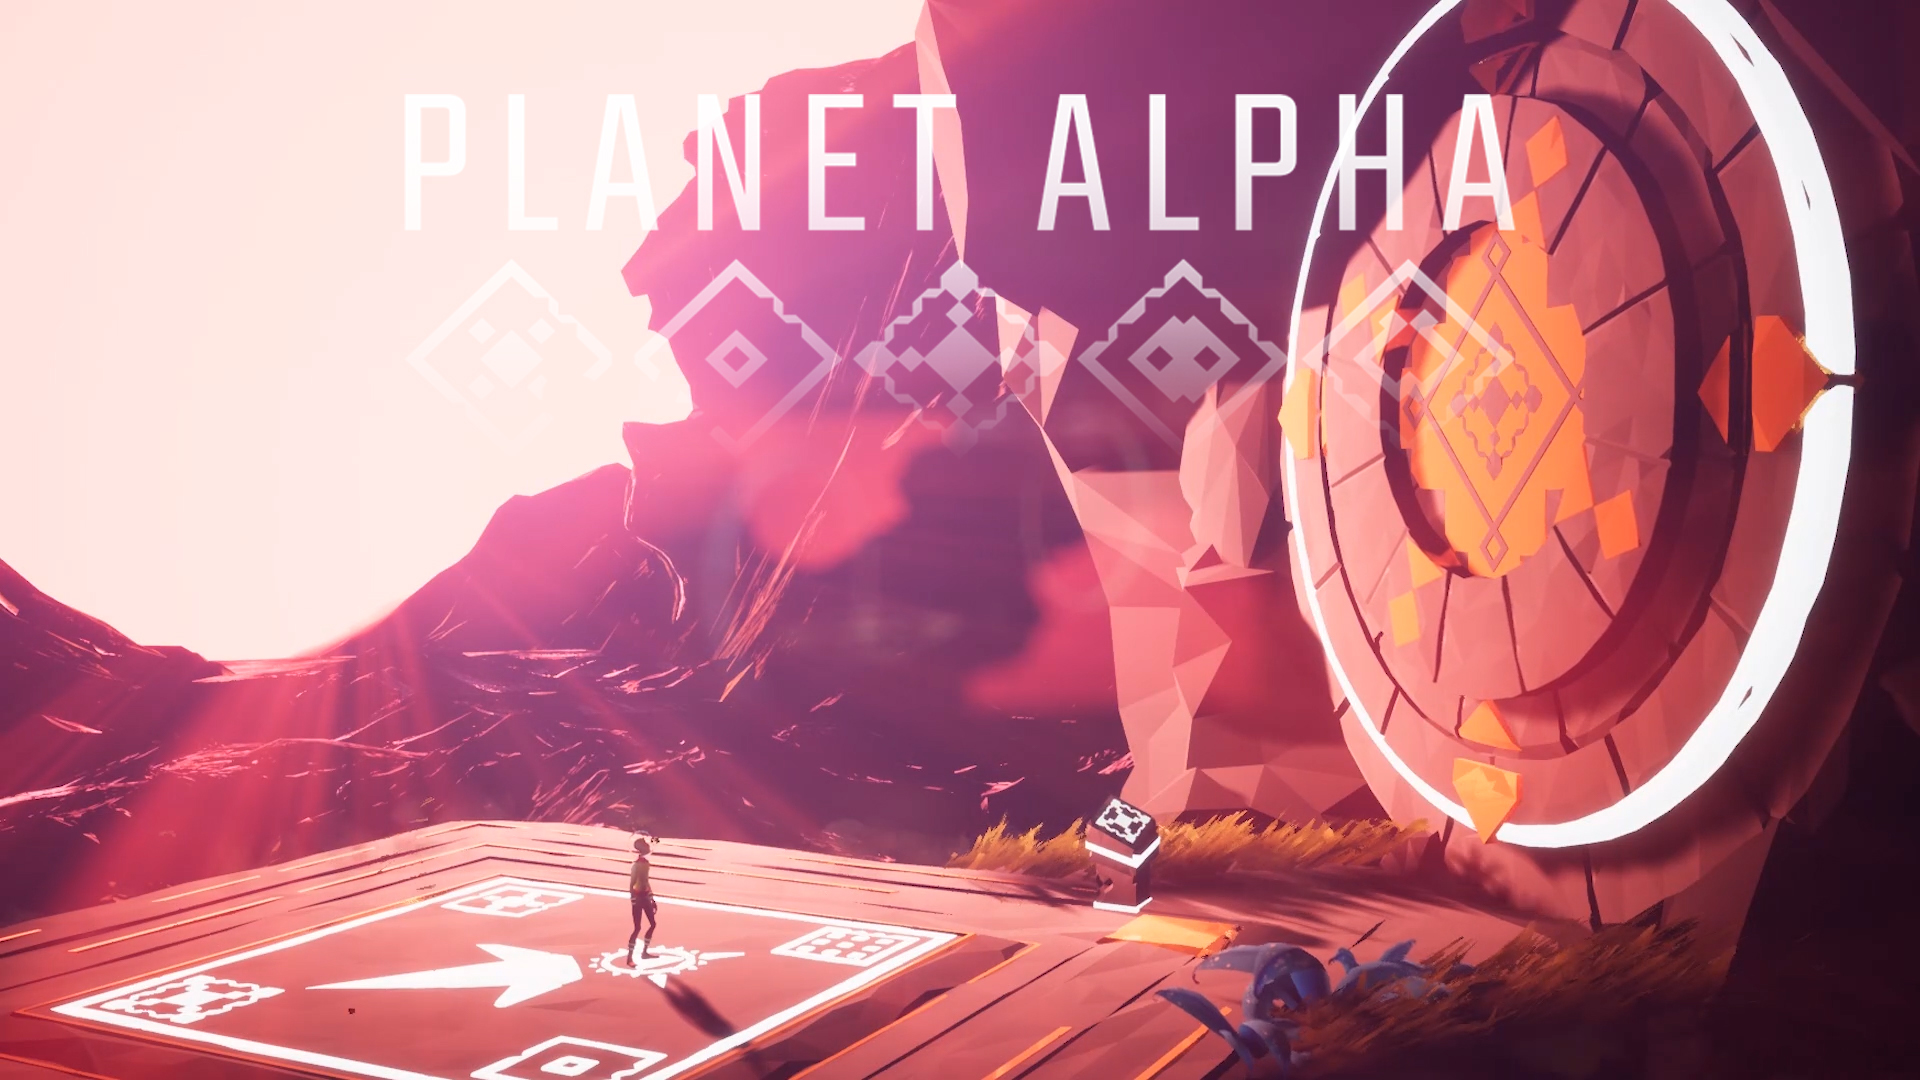 PLANET ALPHA demo available now on Nintendo Switch eShop!